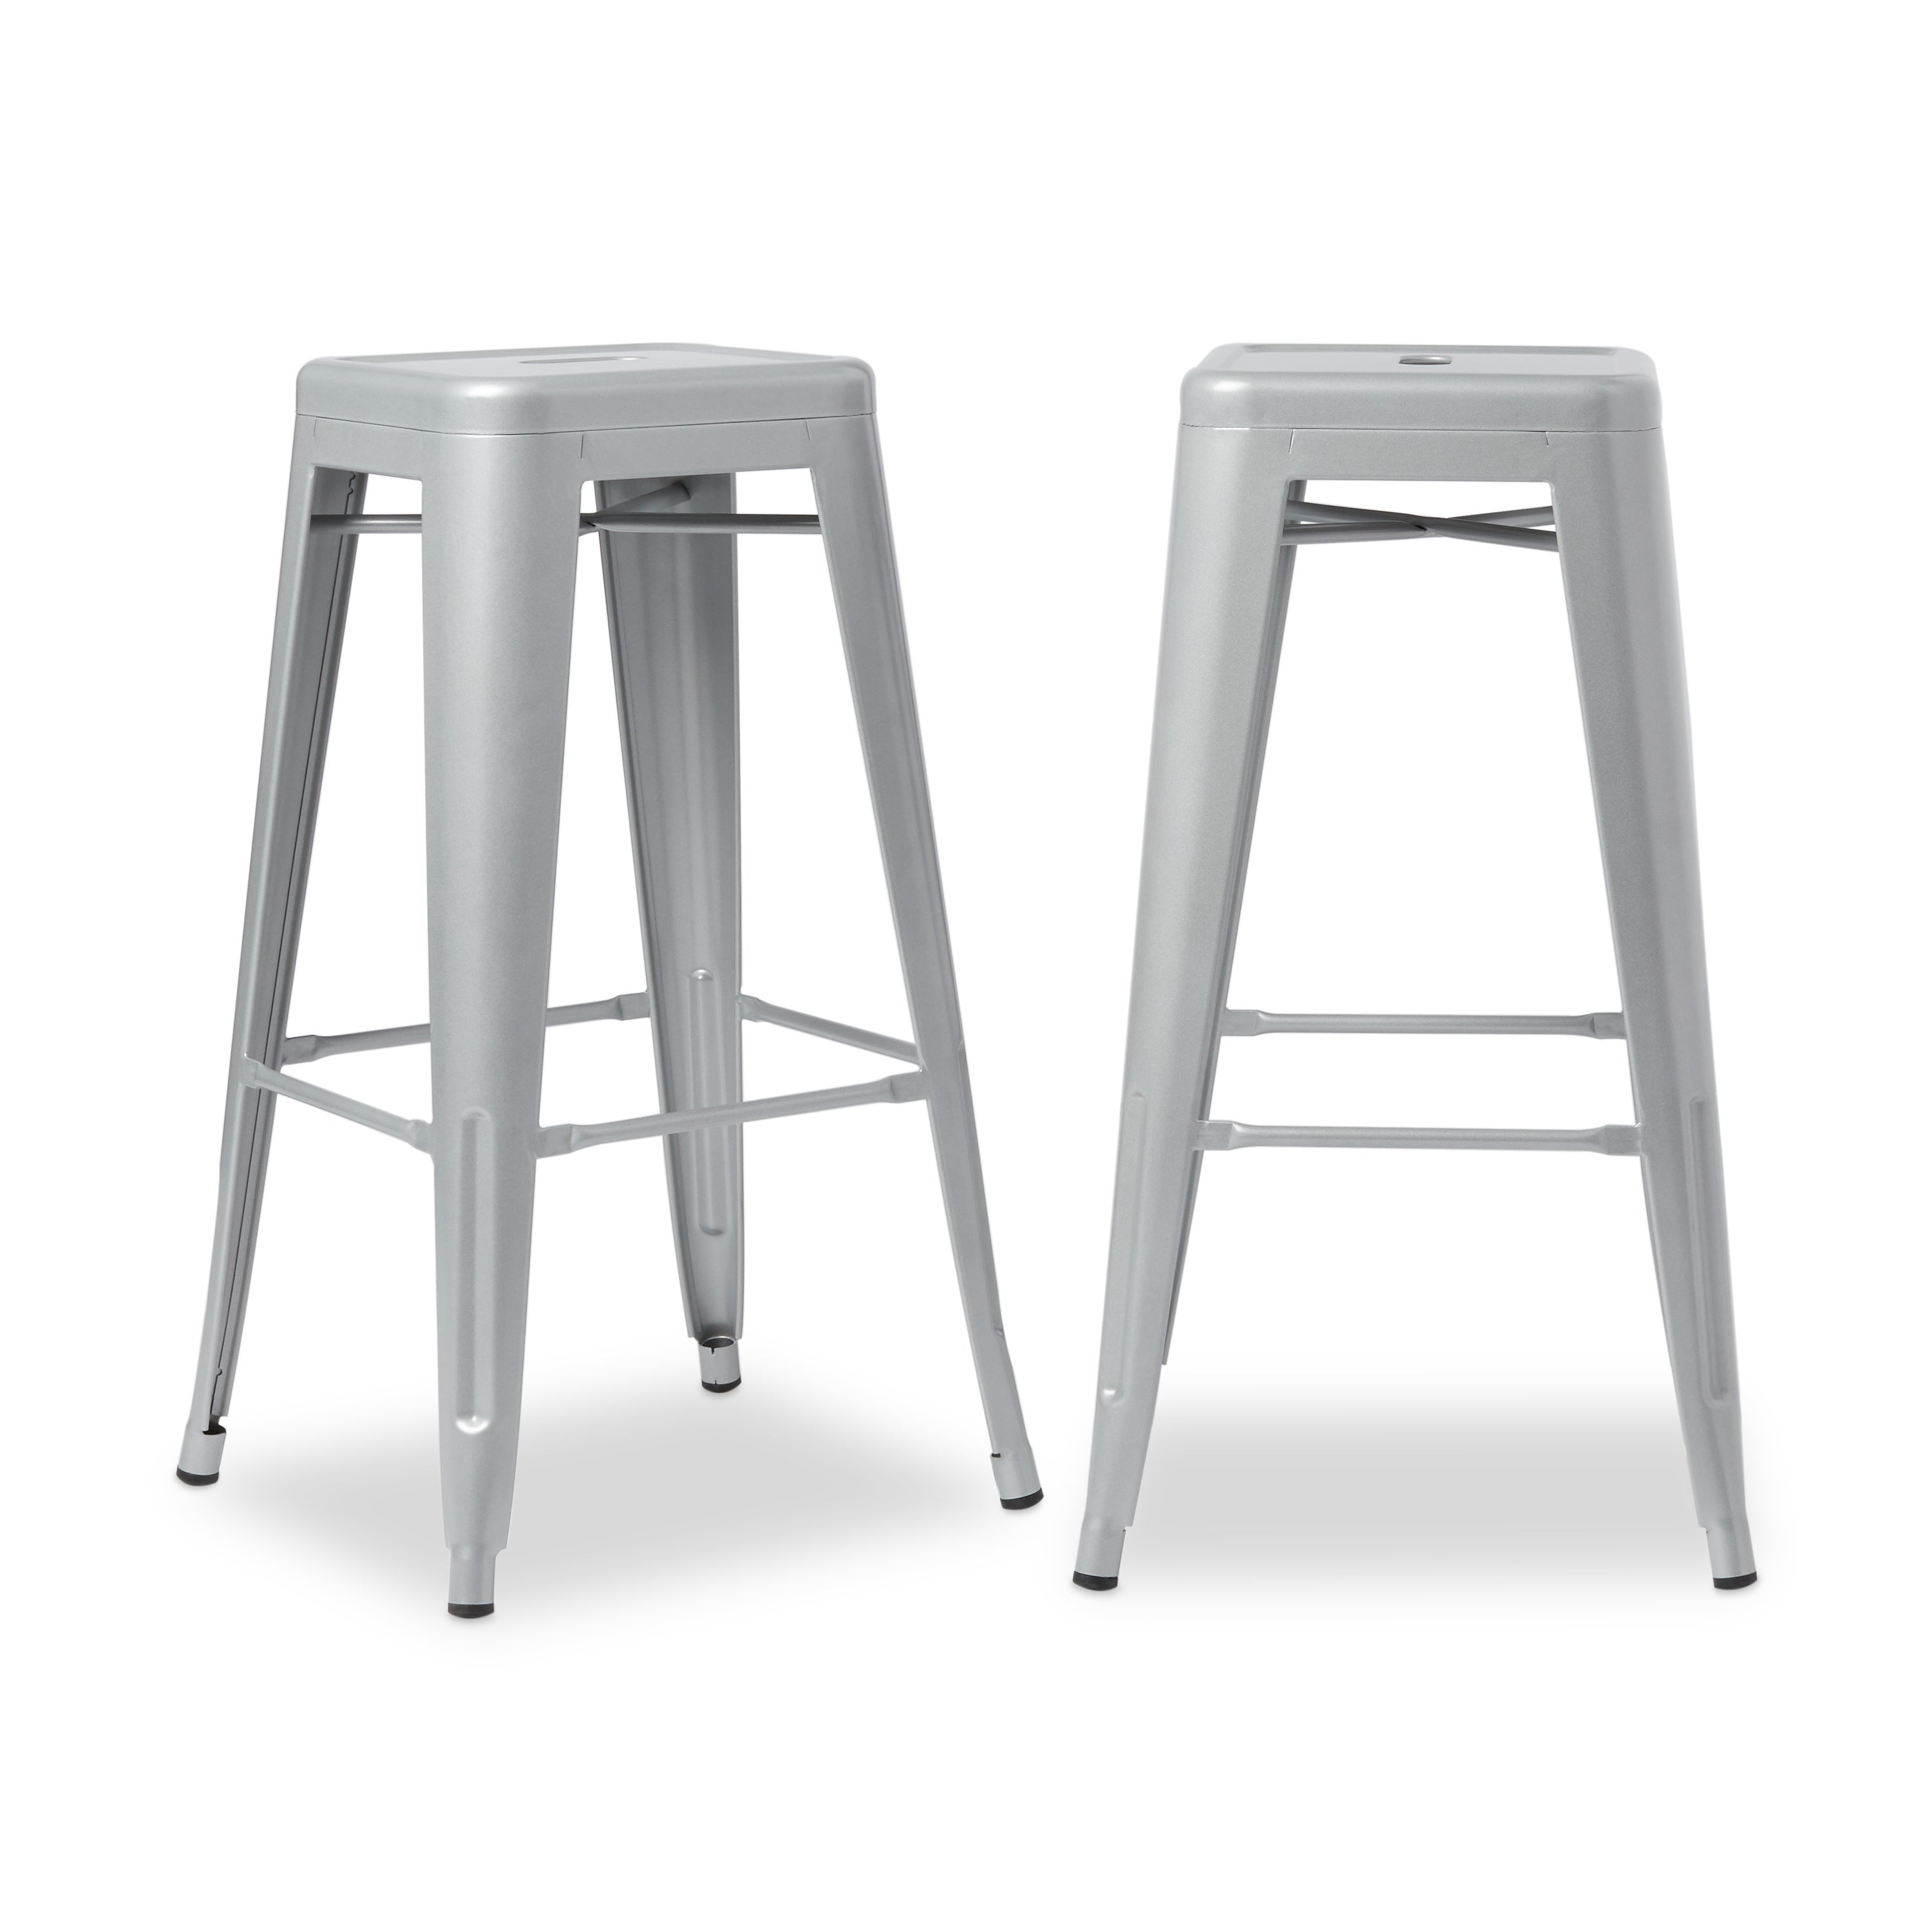 30 in bar stools. Carbon Loft Tabouret 30-inch Metal Barstools (Set Of 2) - Free Shipping Today Overstock 11927319 30 In Bar Stools